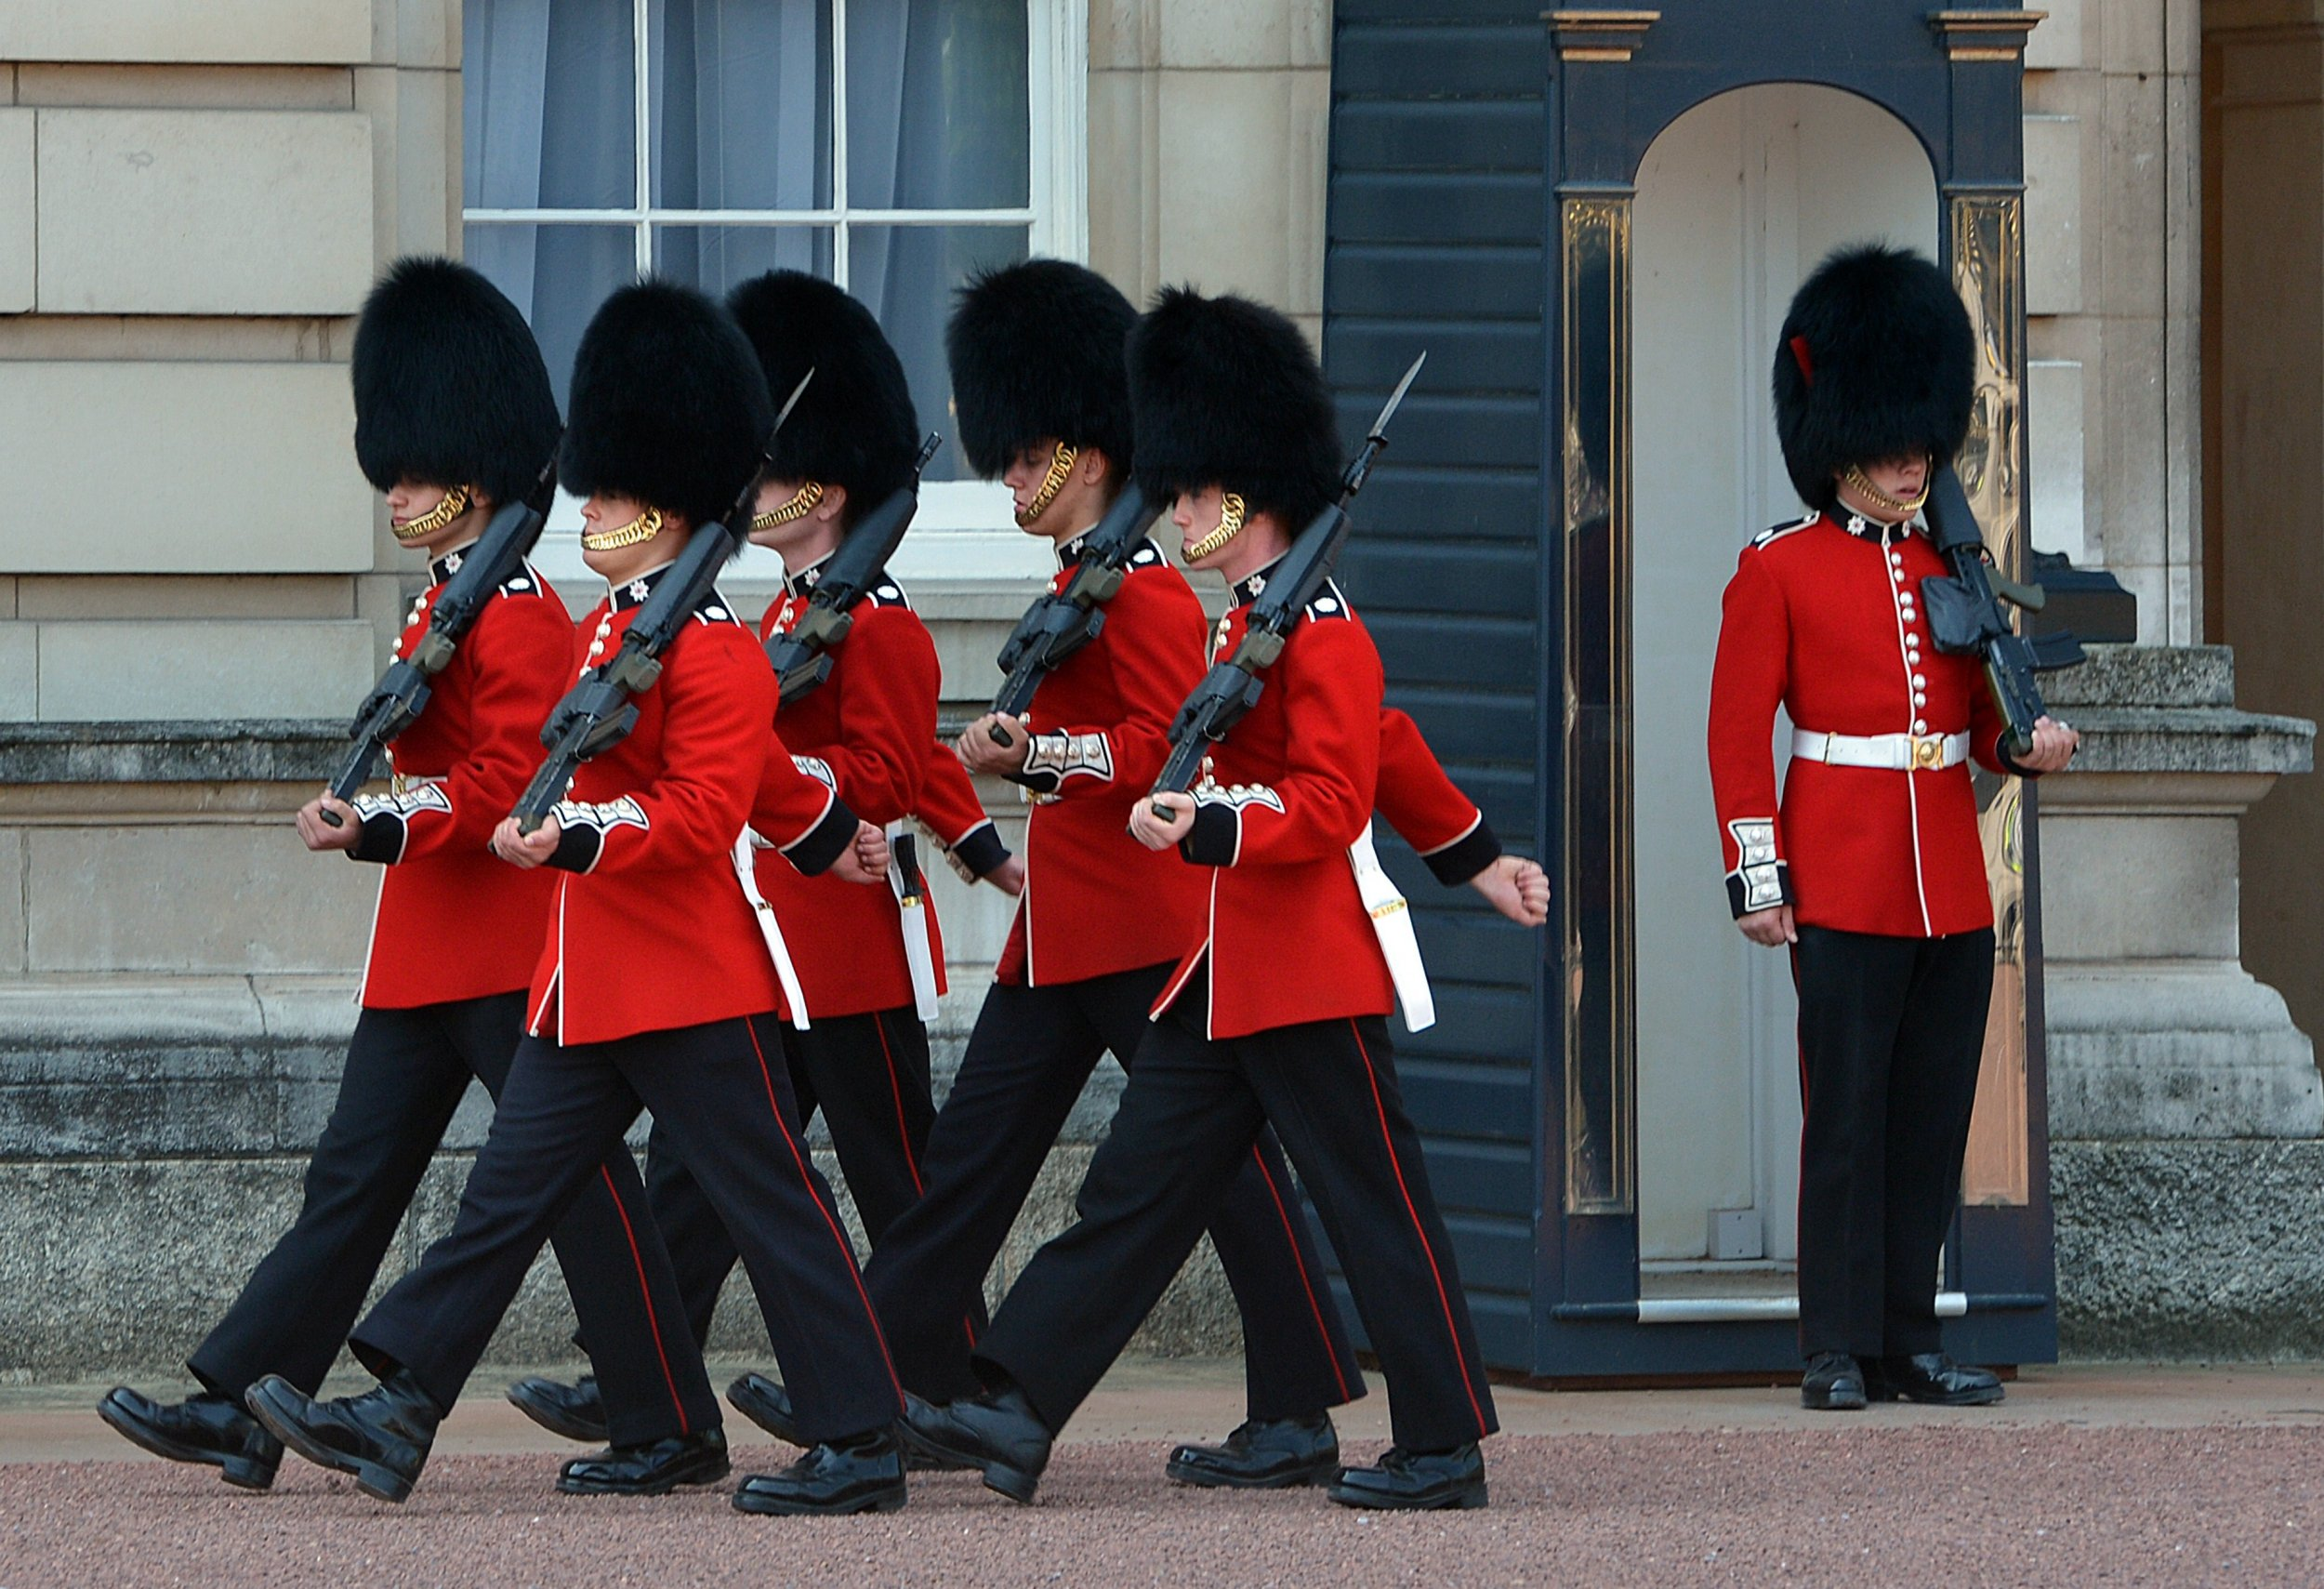 Members of the Queen's Guards march outside Buckingham Palace in central London on July 26, 2012. British Prime Minister David Cameron declared security his main concern on the eve of the London Olympics after the city's security preparations had been called into question in comments by US Republican presidential candidate Mitt Romney, who is in London to attend the opening ceremony. AFP PHOTO/Mark RALSTON (Photo credit should read MARK RALSTON/AFP/Getty Images)